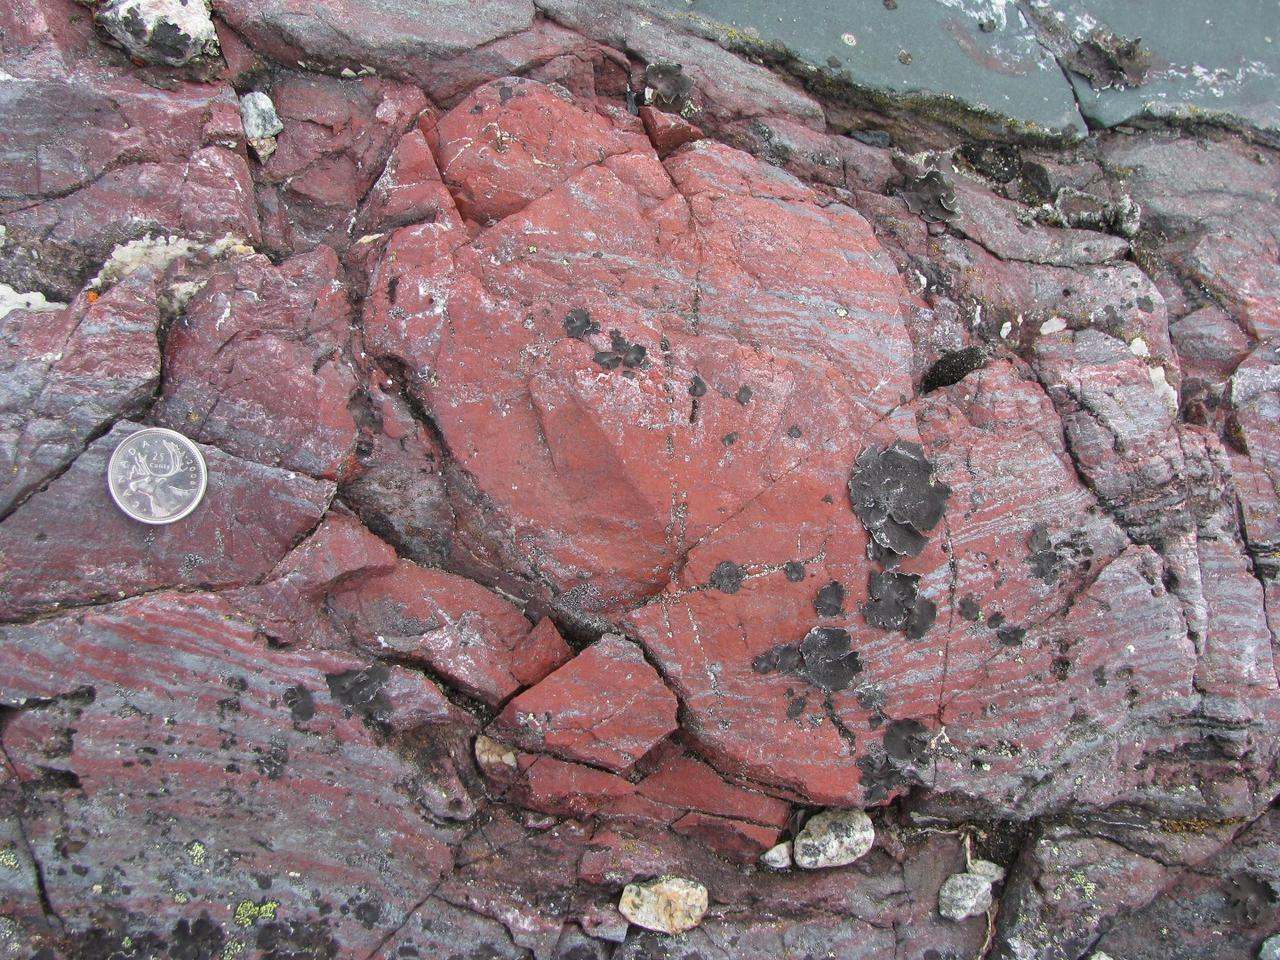 The haematitic chert (an iron-and silica-rich rock) seen herecontains tubular and filament-likemicrofossils